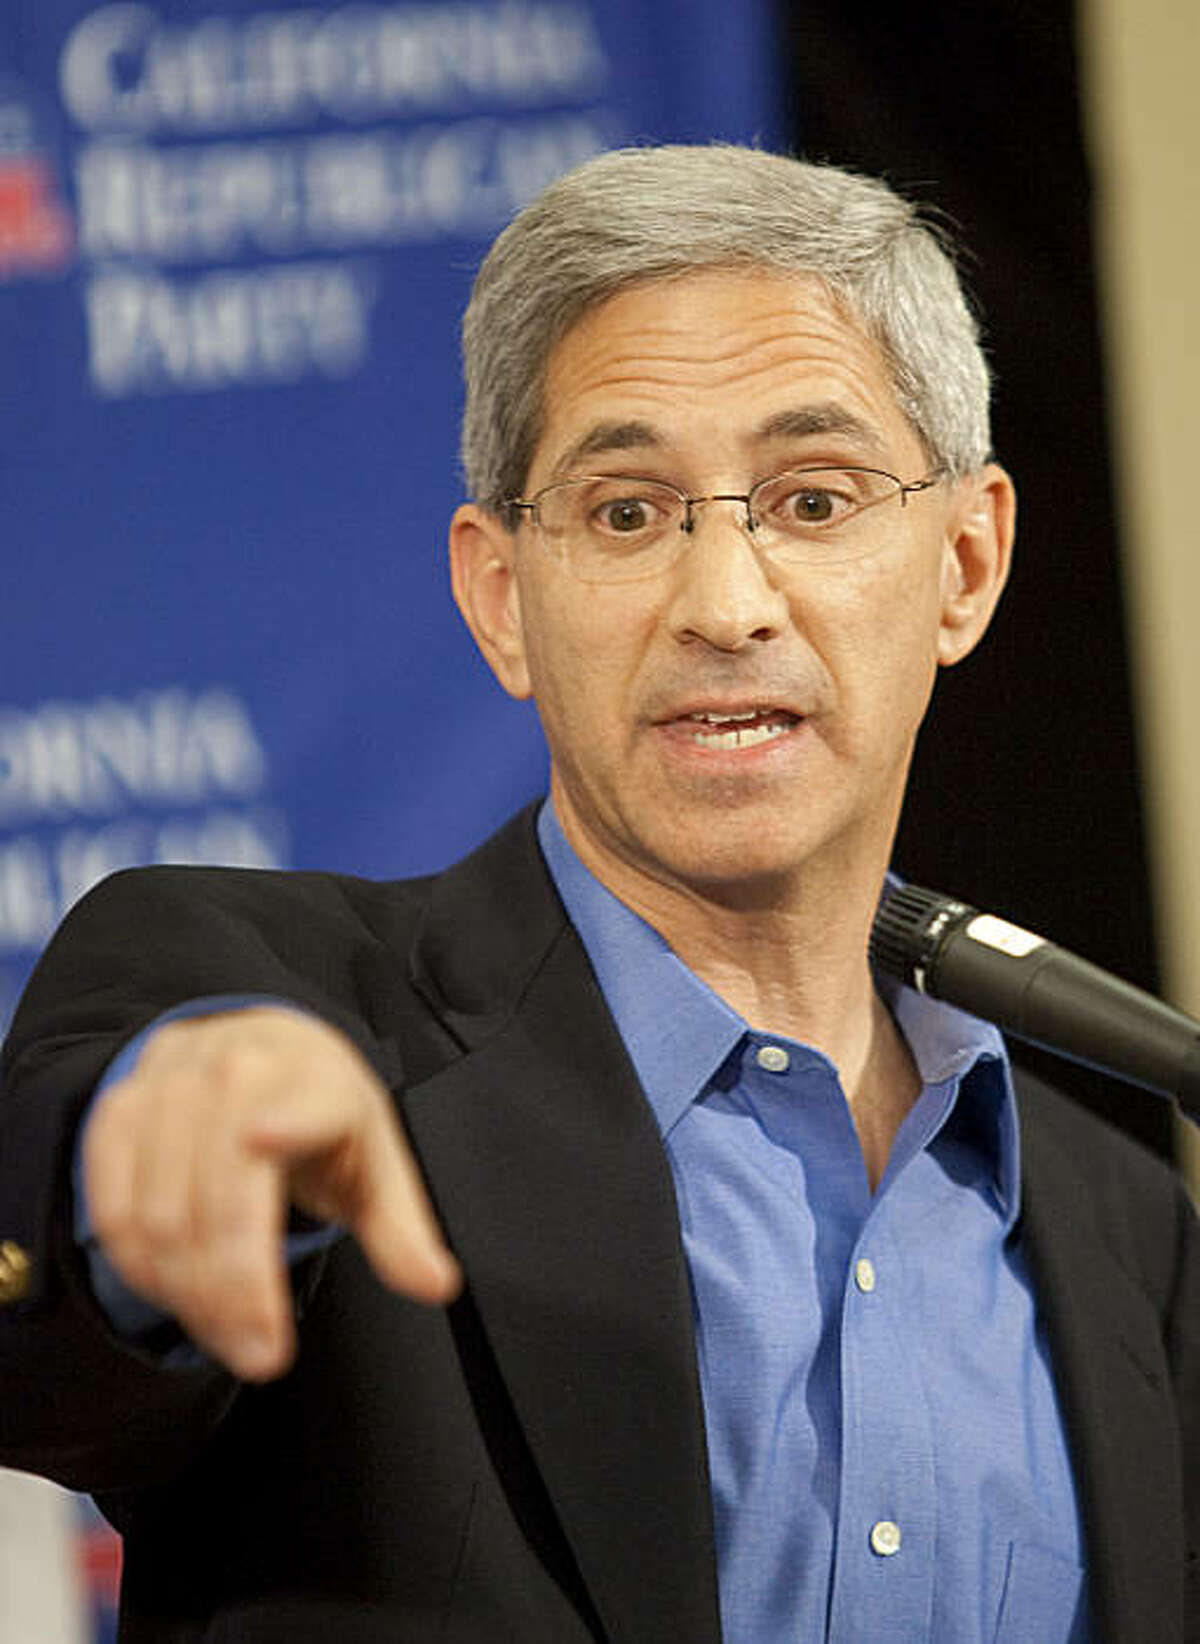 State Insurance Commissioner Steve Poizner speaks during a news conference at the California Republican Convention in Indian Wells, Calif., on Saturday, Sept. 26, 2009. Poizner is seeking the Republican nomination for Governor of California.(AP Photo/Francis Specker)